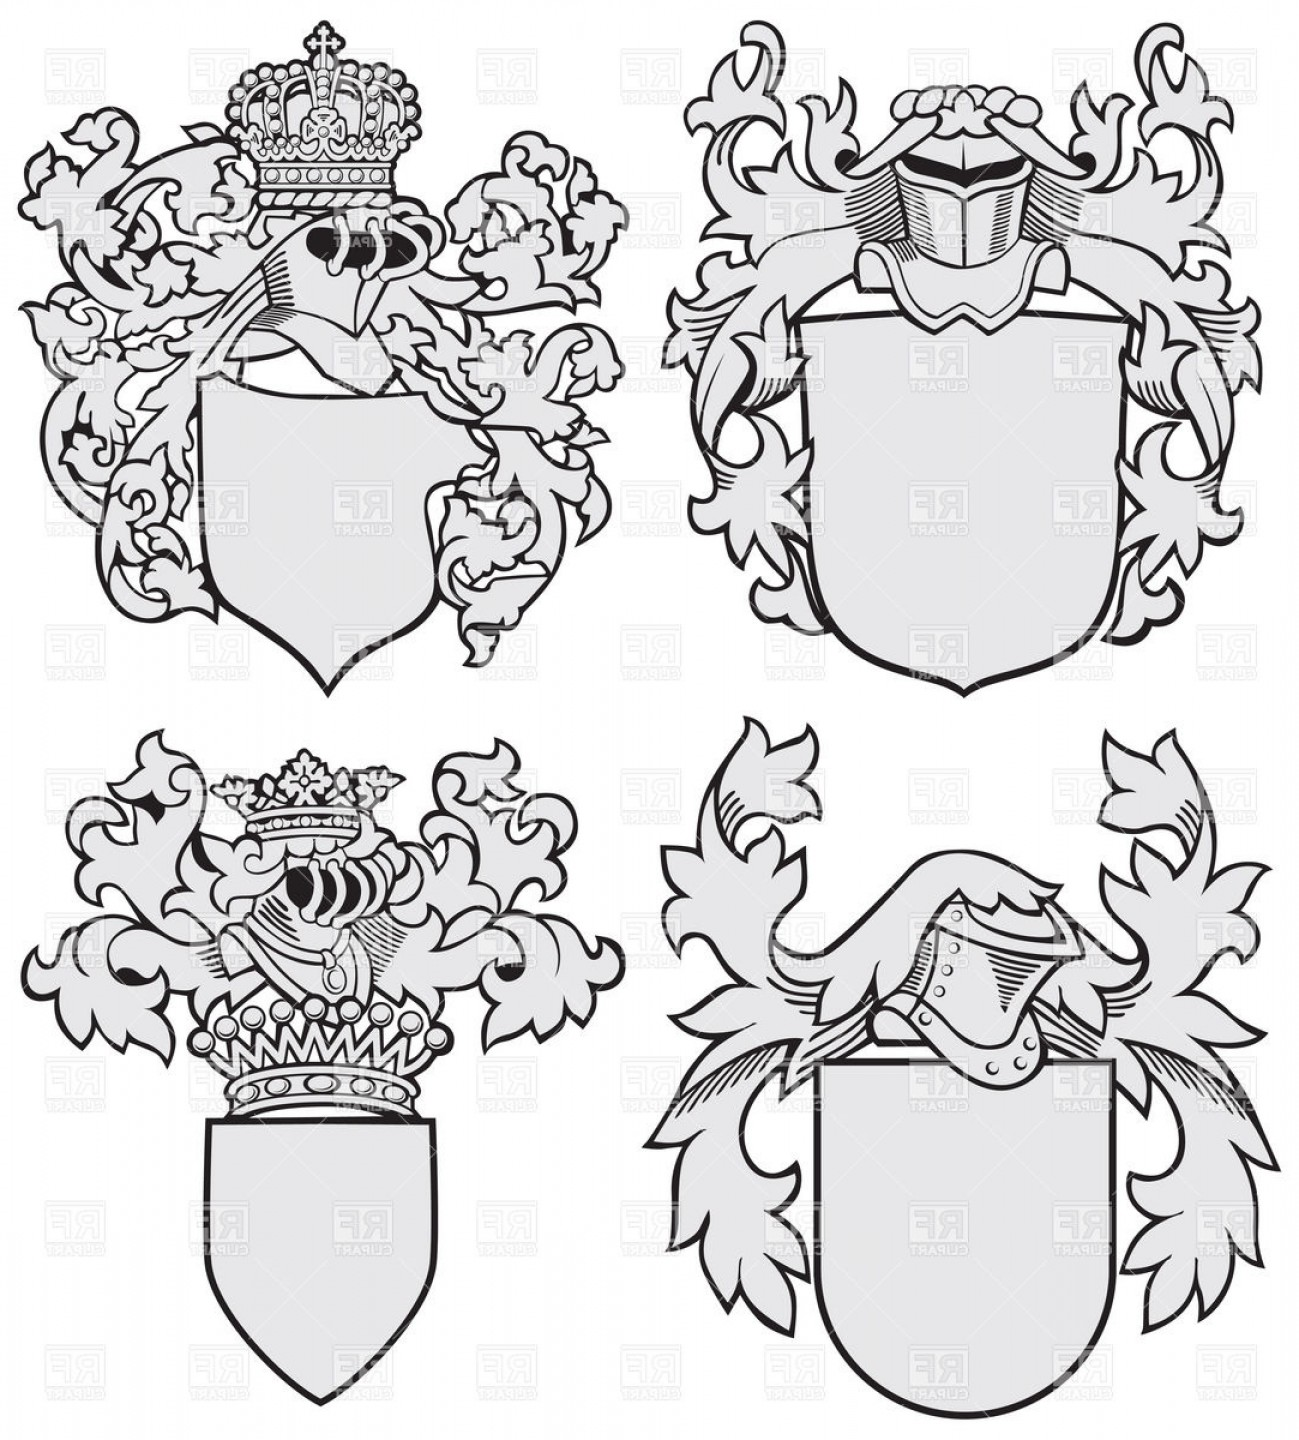 Coat Of Arms Template Vector At Vectorified